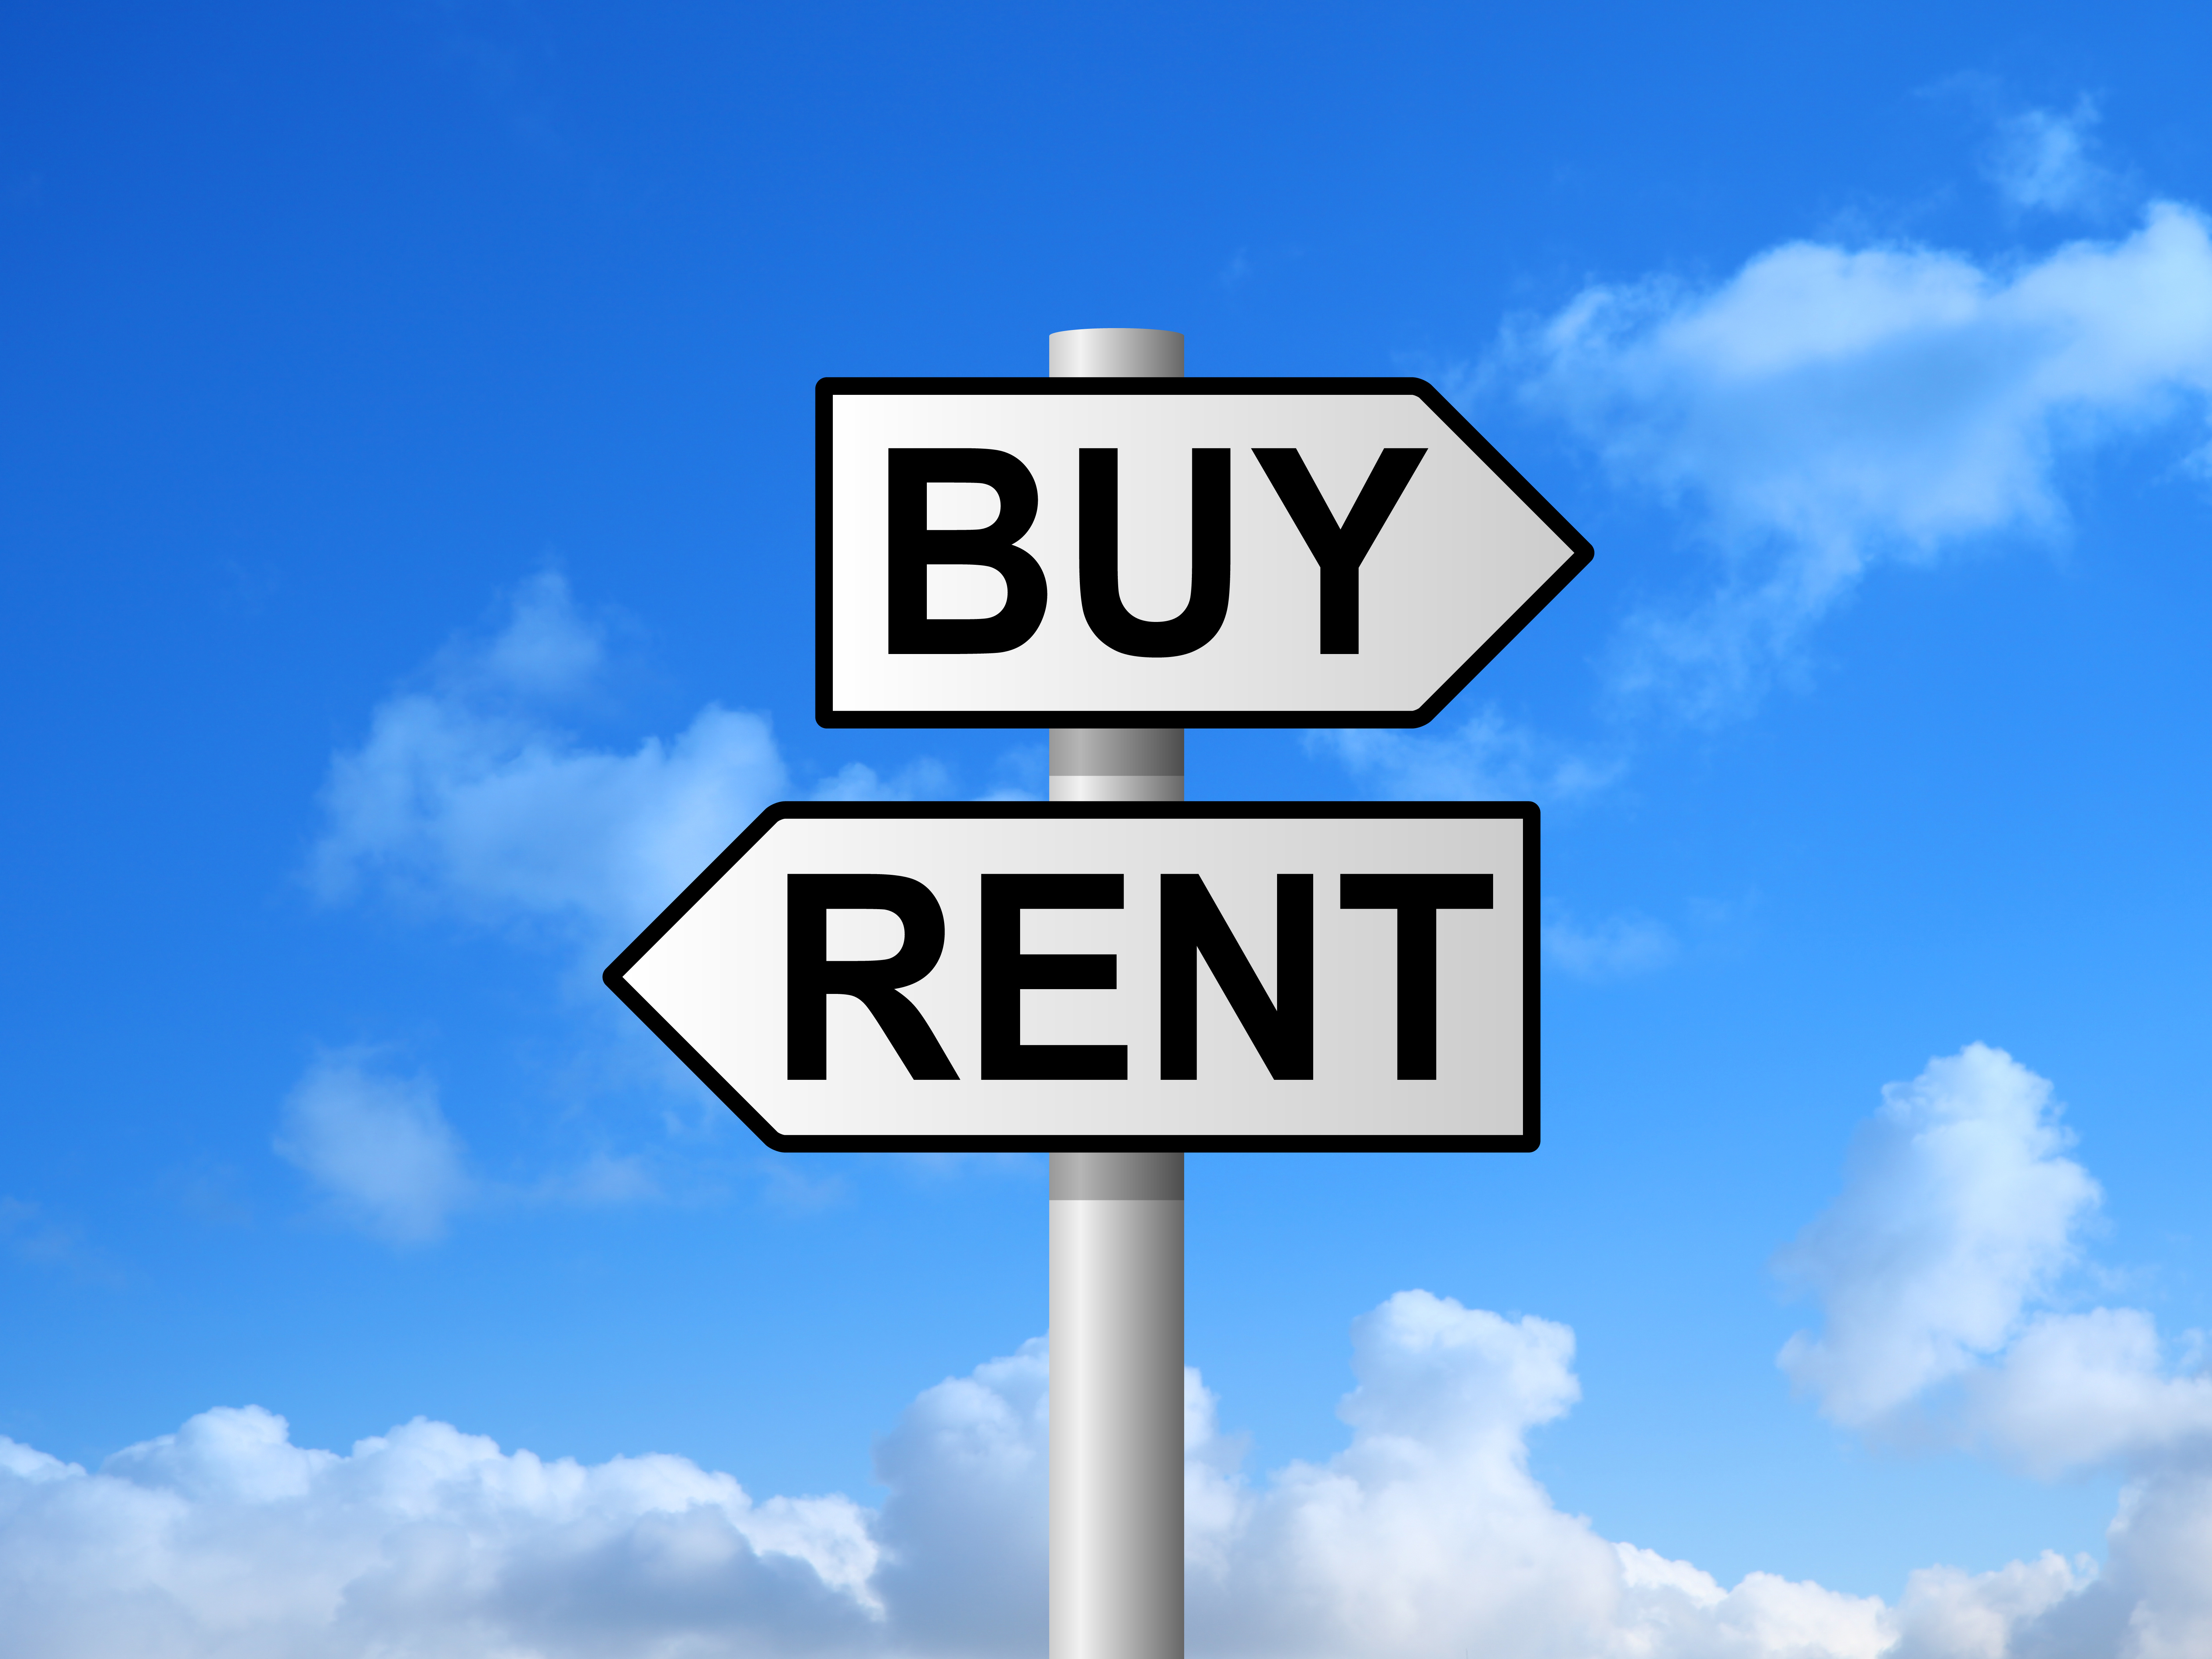 Buy or rent picture